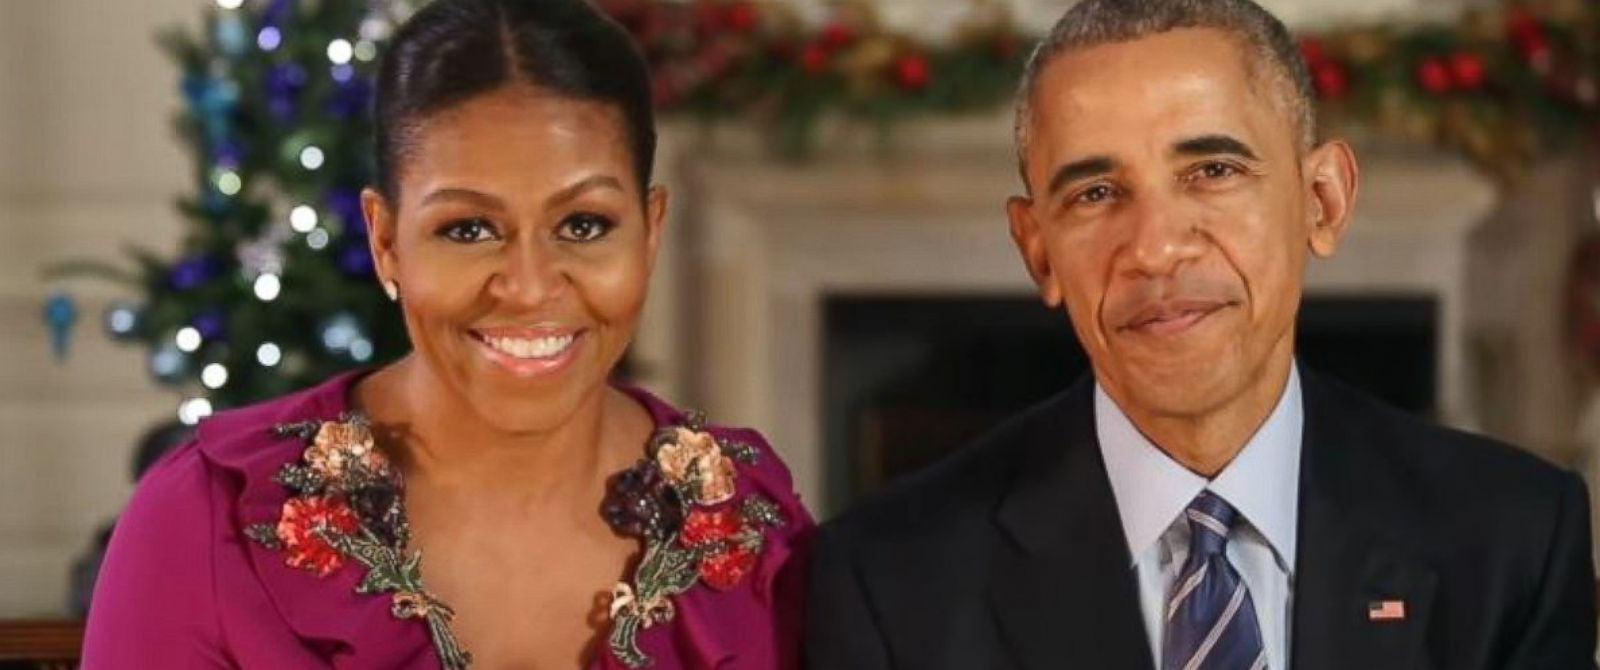 Obamas Urge \'Compassion and Hope\' in Their Last White House ...